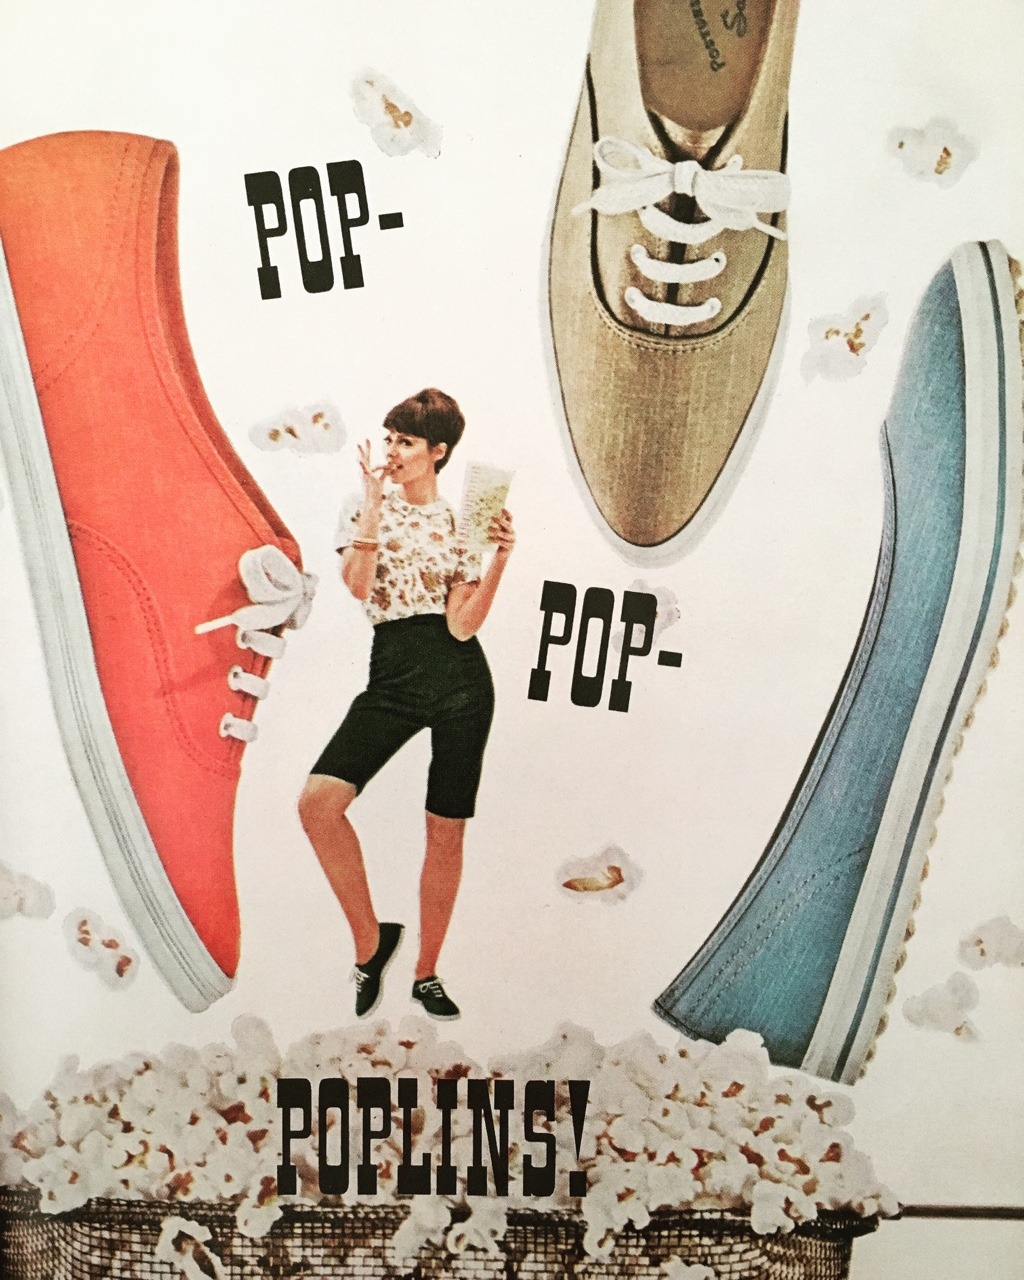 Pop-Pop Poplins!  P-F Sneakers. Mademoiselle. May 1964  The Posture Foundation insole was patented by well-known tire (and canvas footwear pioneer), BF Goodrich in 1937. The shoes were commonly referred to as P-F, and P-F Flyers were a pretty popular brand, especially in the'50s and'60s. By 1972, BF Goodrich left the shoe business and was sold to the parent company of Converse, but due to legalities, the brand was untouched from 1975 until 2001, when New Balance purchased PF & relaunched it in 2005.